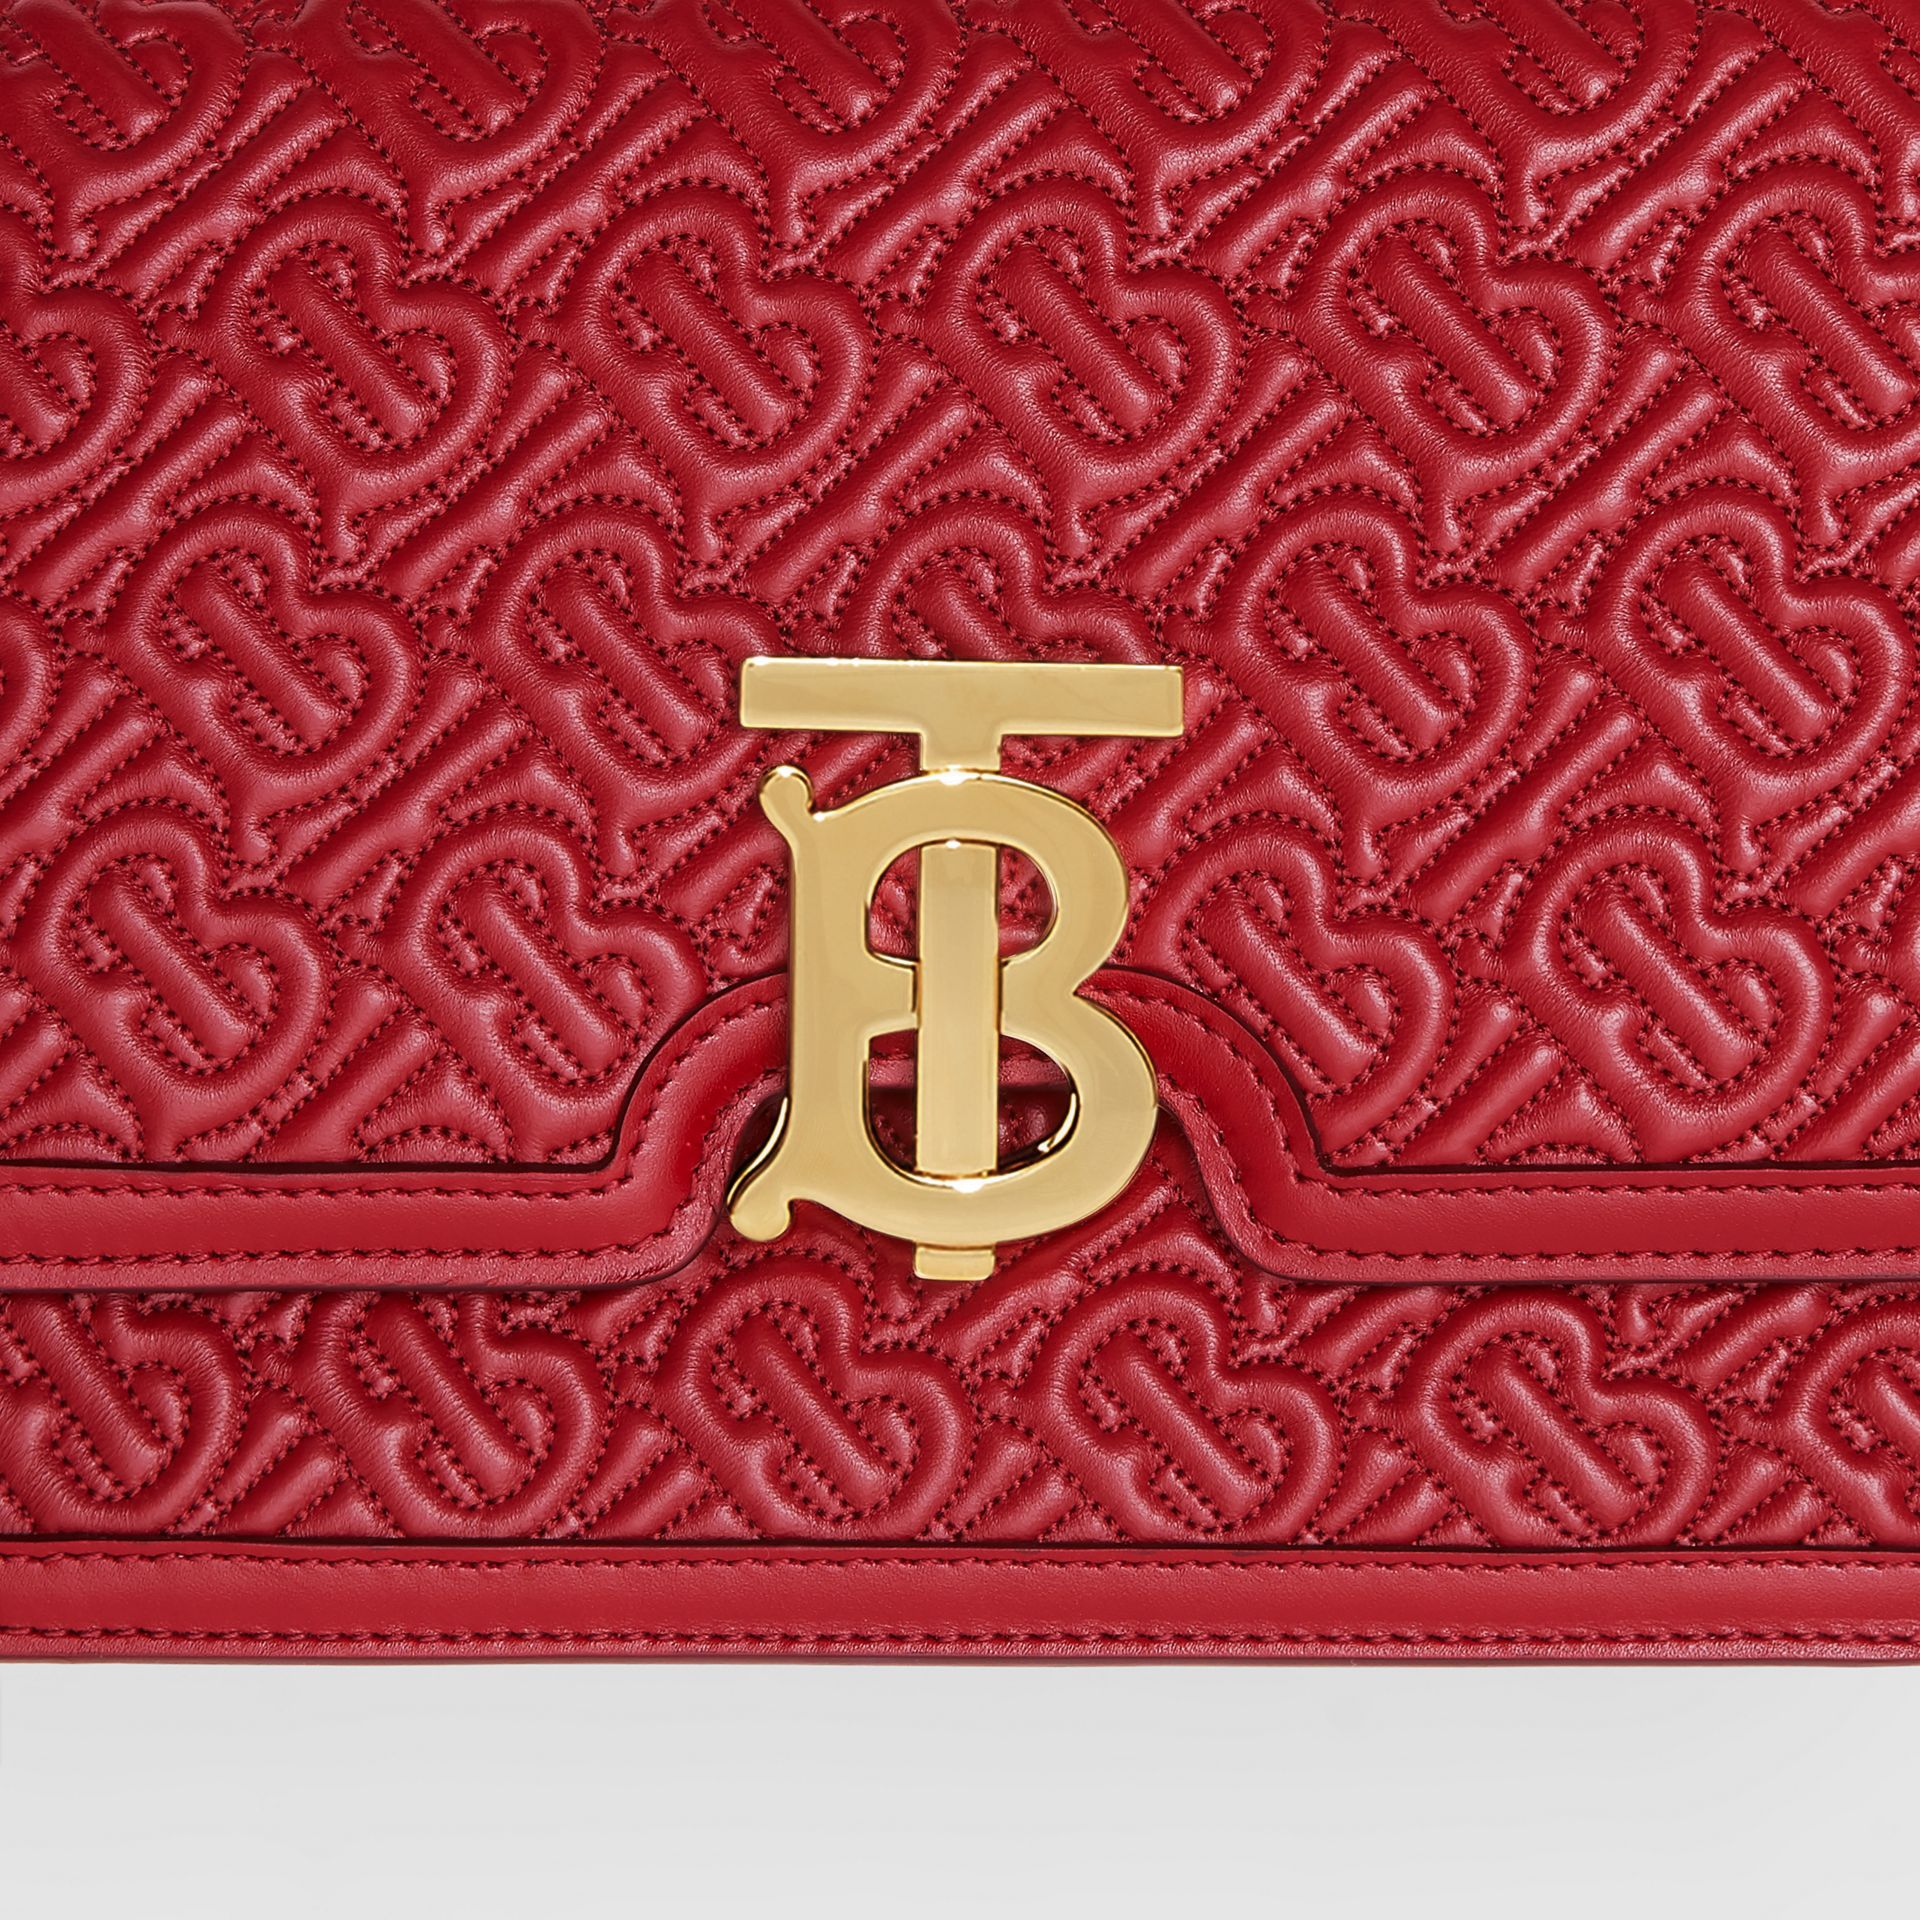 Small Quilted Monogram Lambskin TB Bag in Dark Carmine - Women | Burberry - gallery image 1